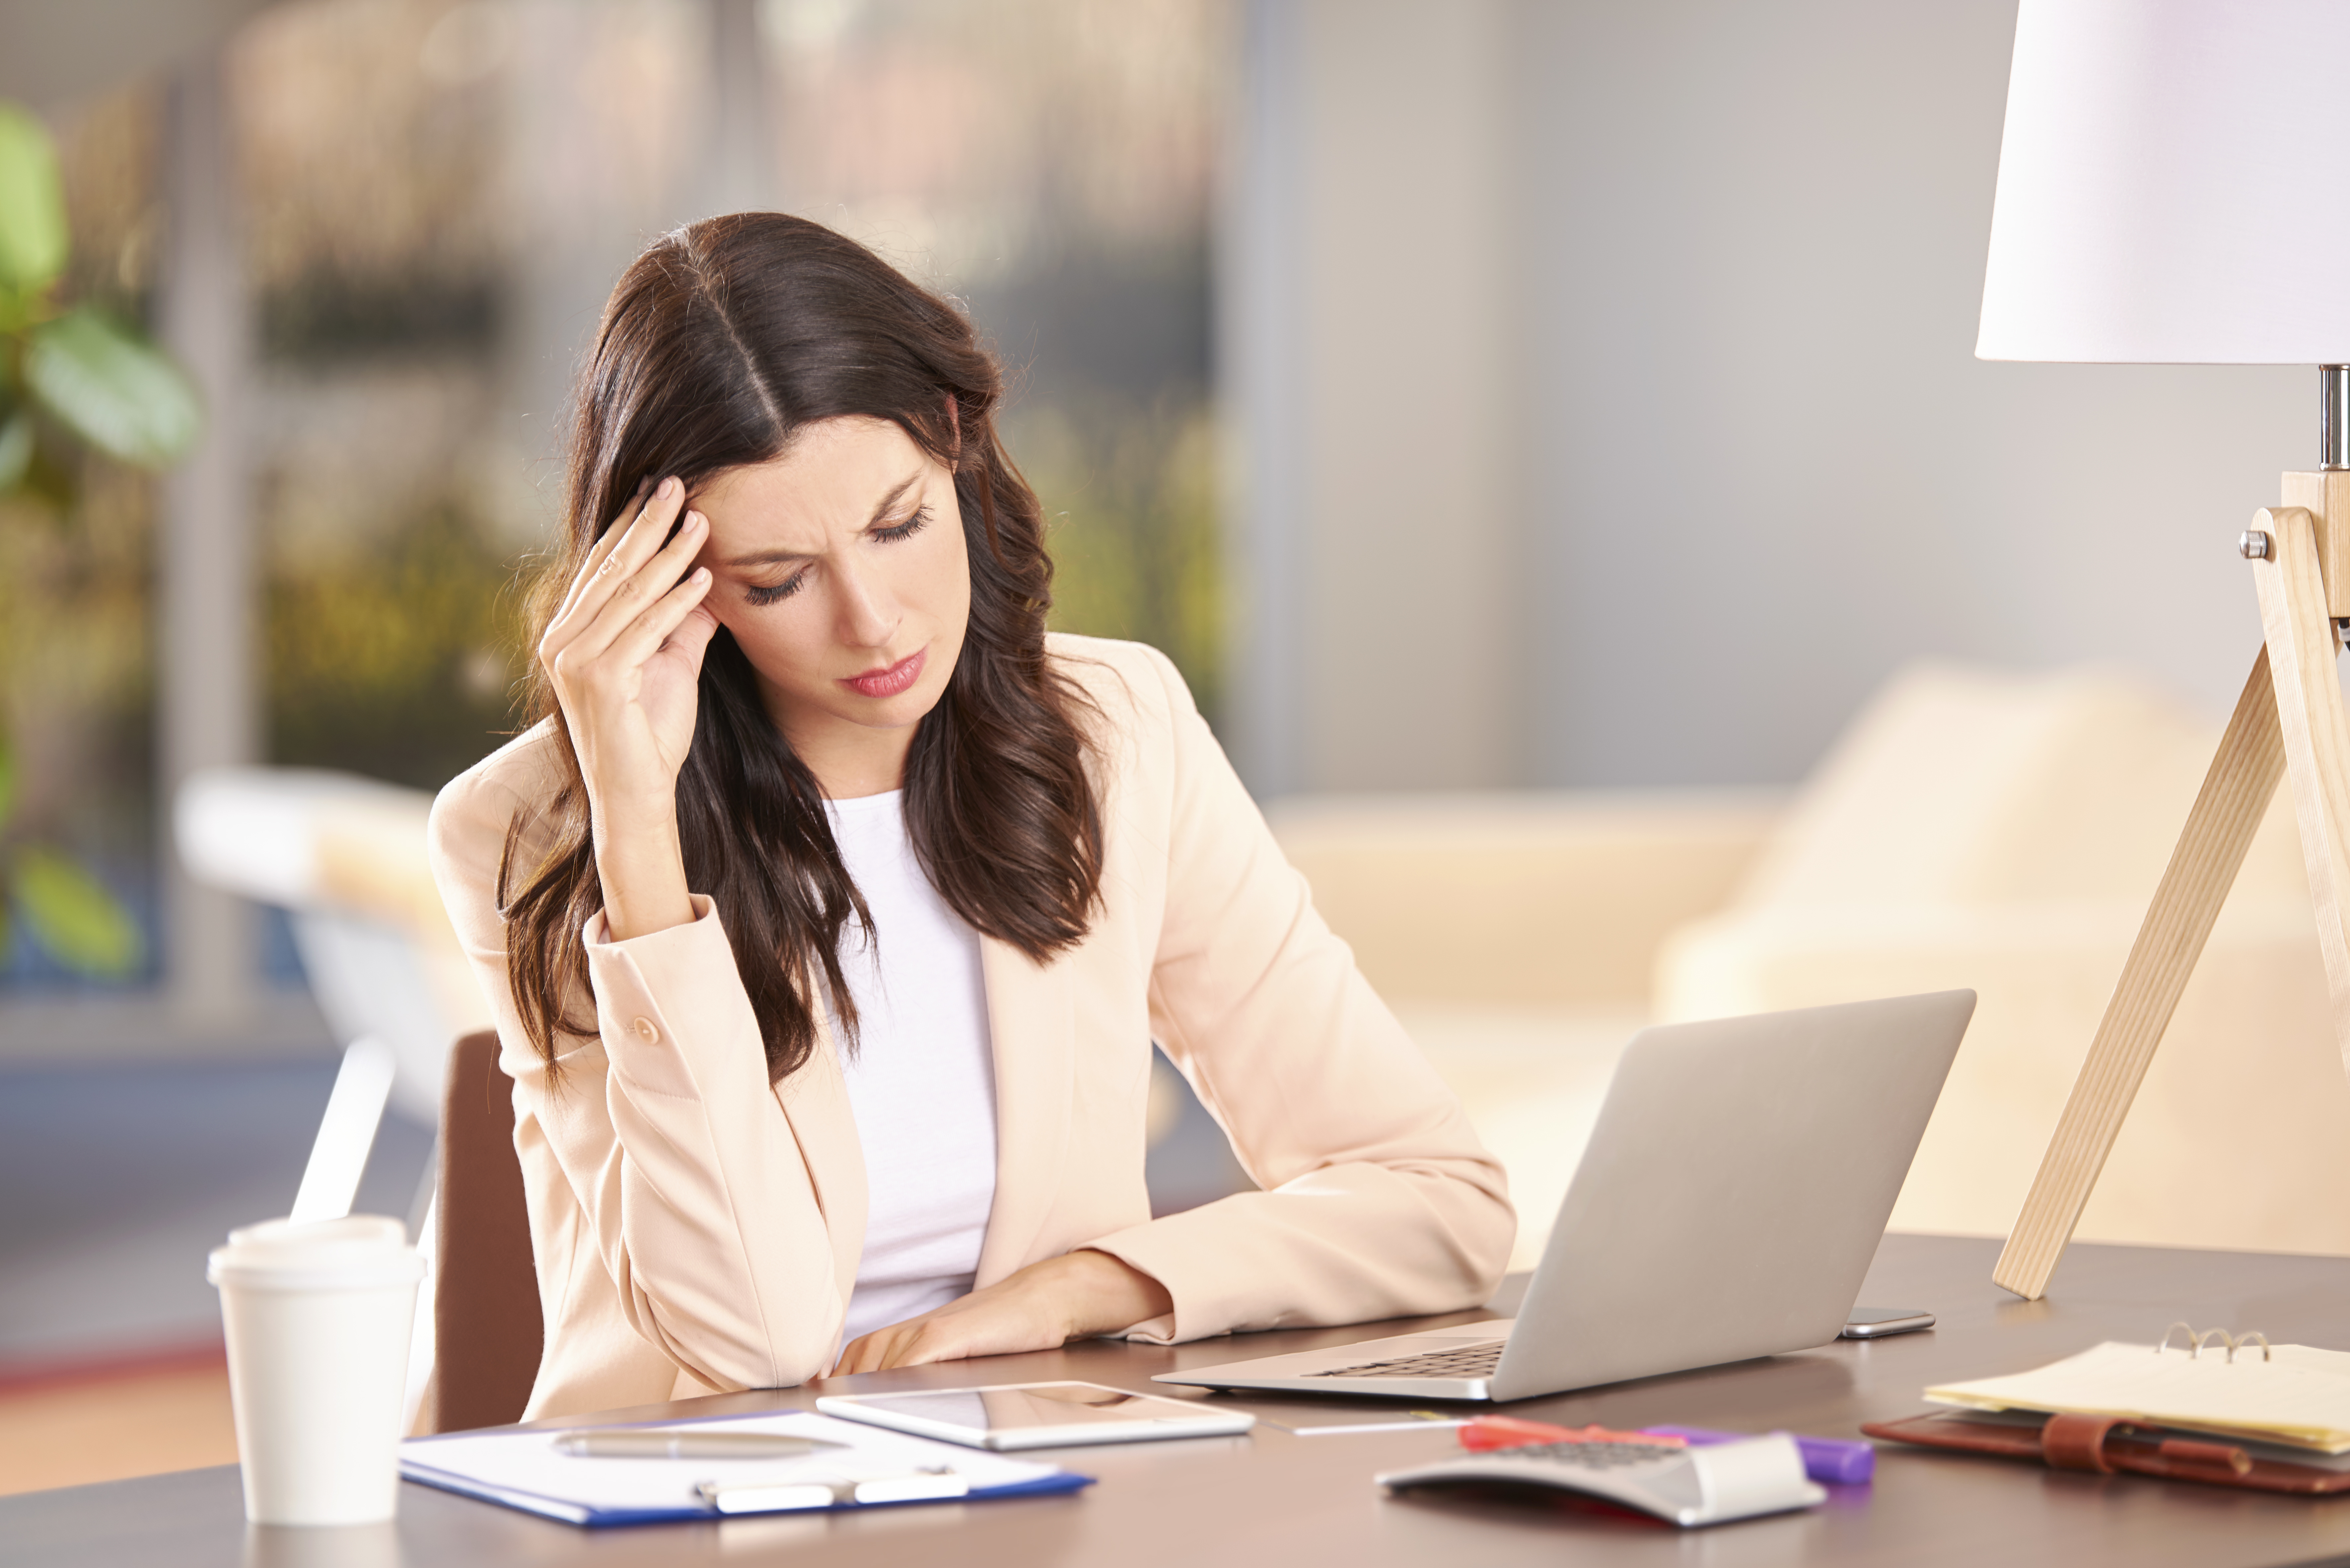 Shot of a CEO businesswoman looking stressed while sitting in her office in front of laptop.